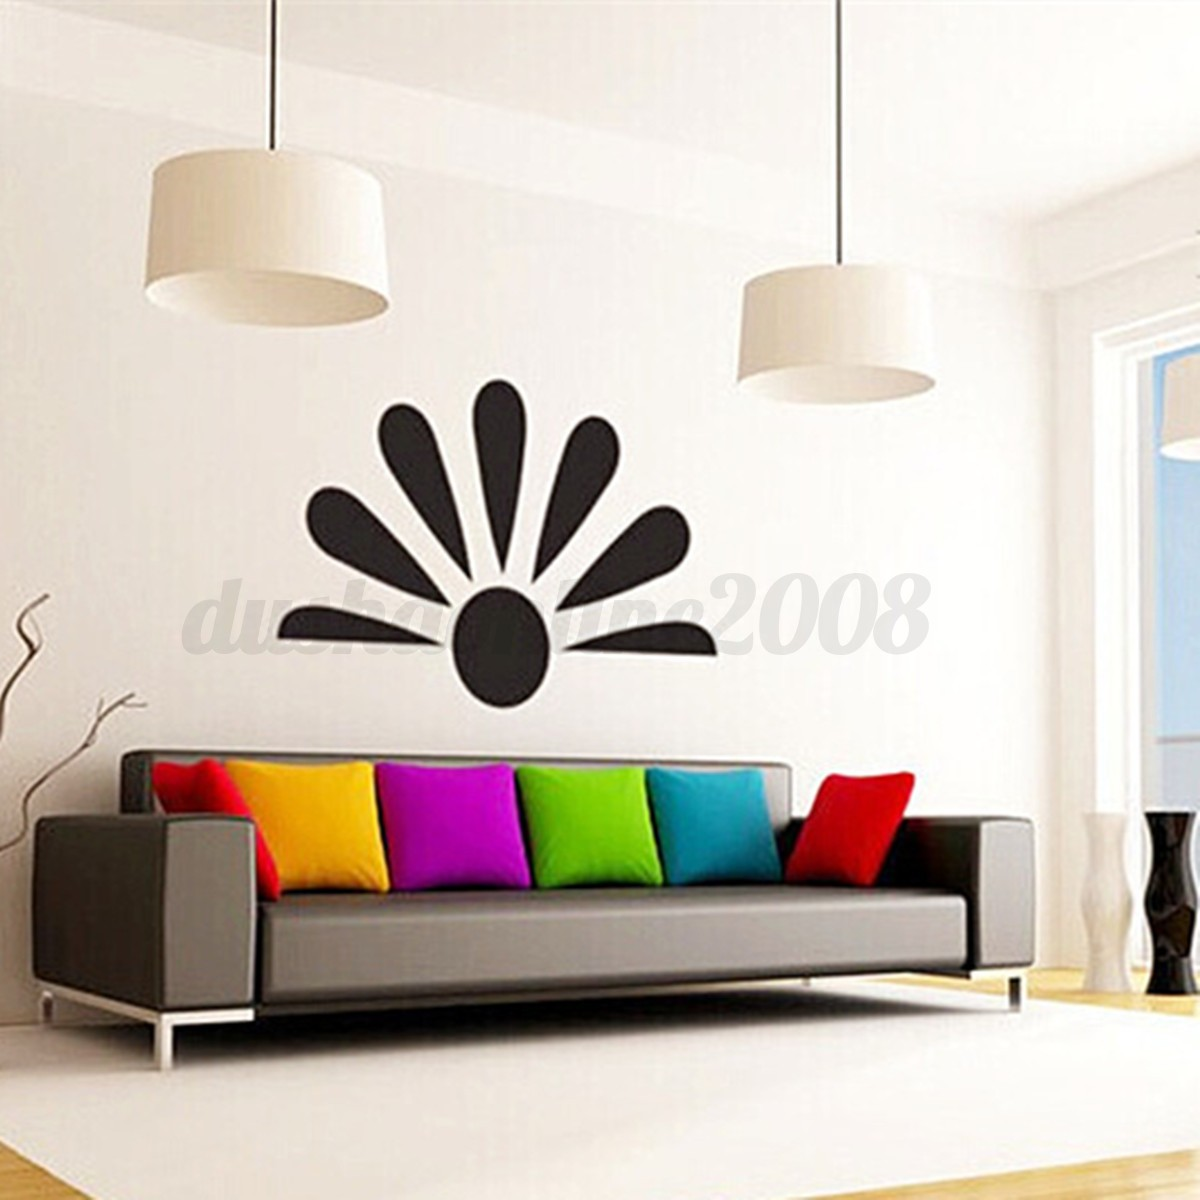 8pcs epanouissement diy autocollant mural miroir adh sif art d cor mur chambre ebay. Black Bedroom Furniture Sets. Home Design Ideas